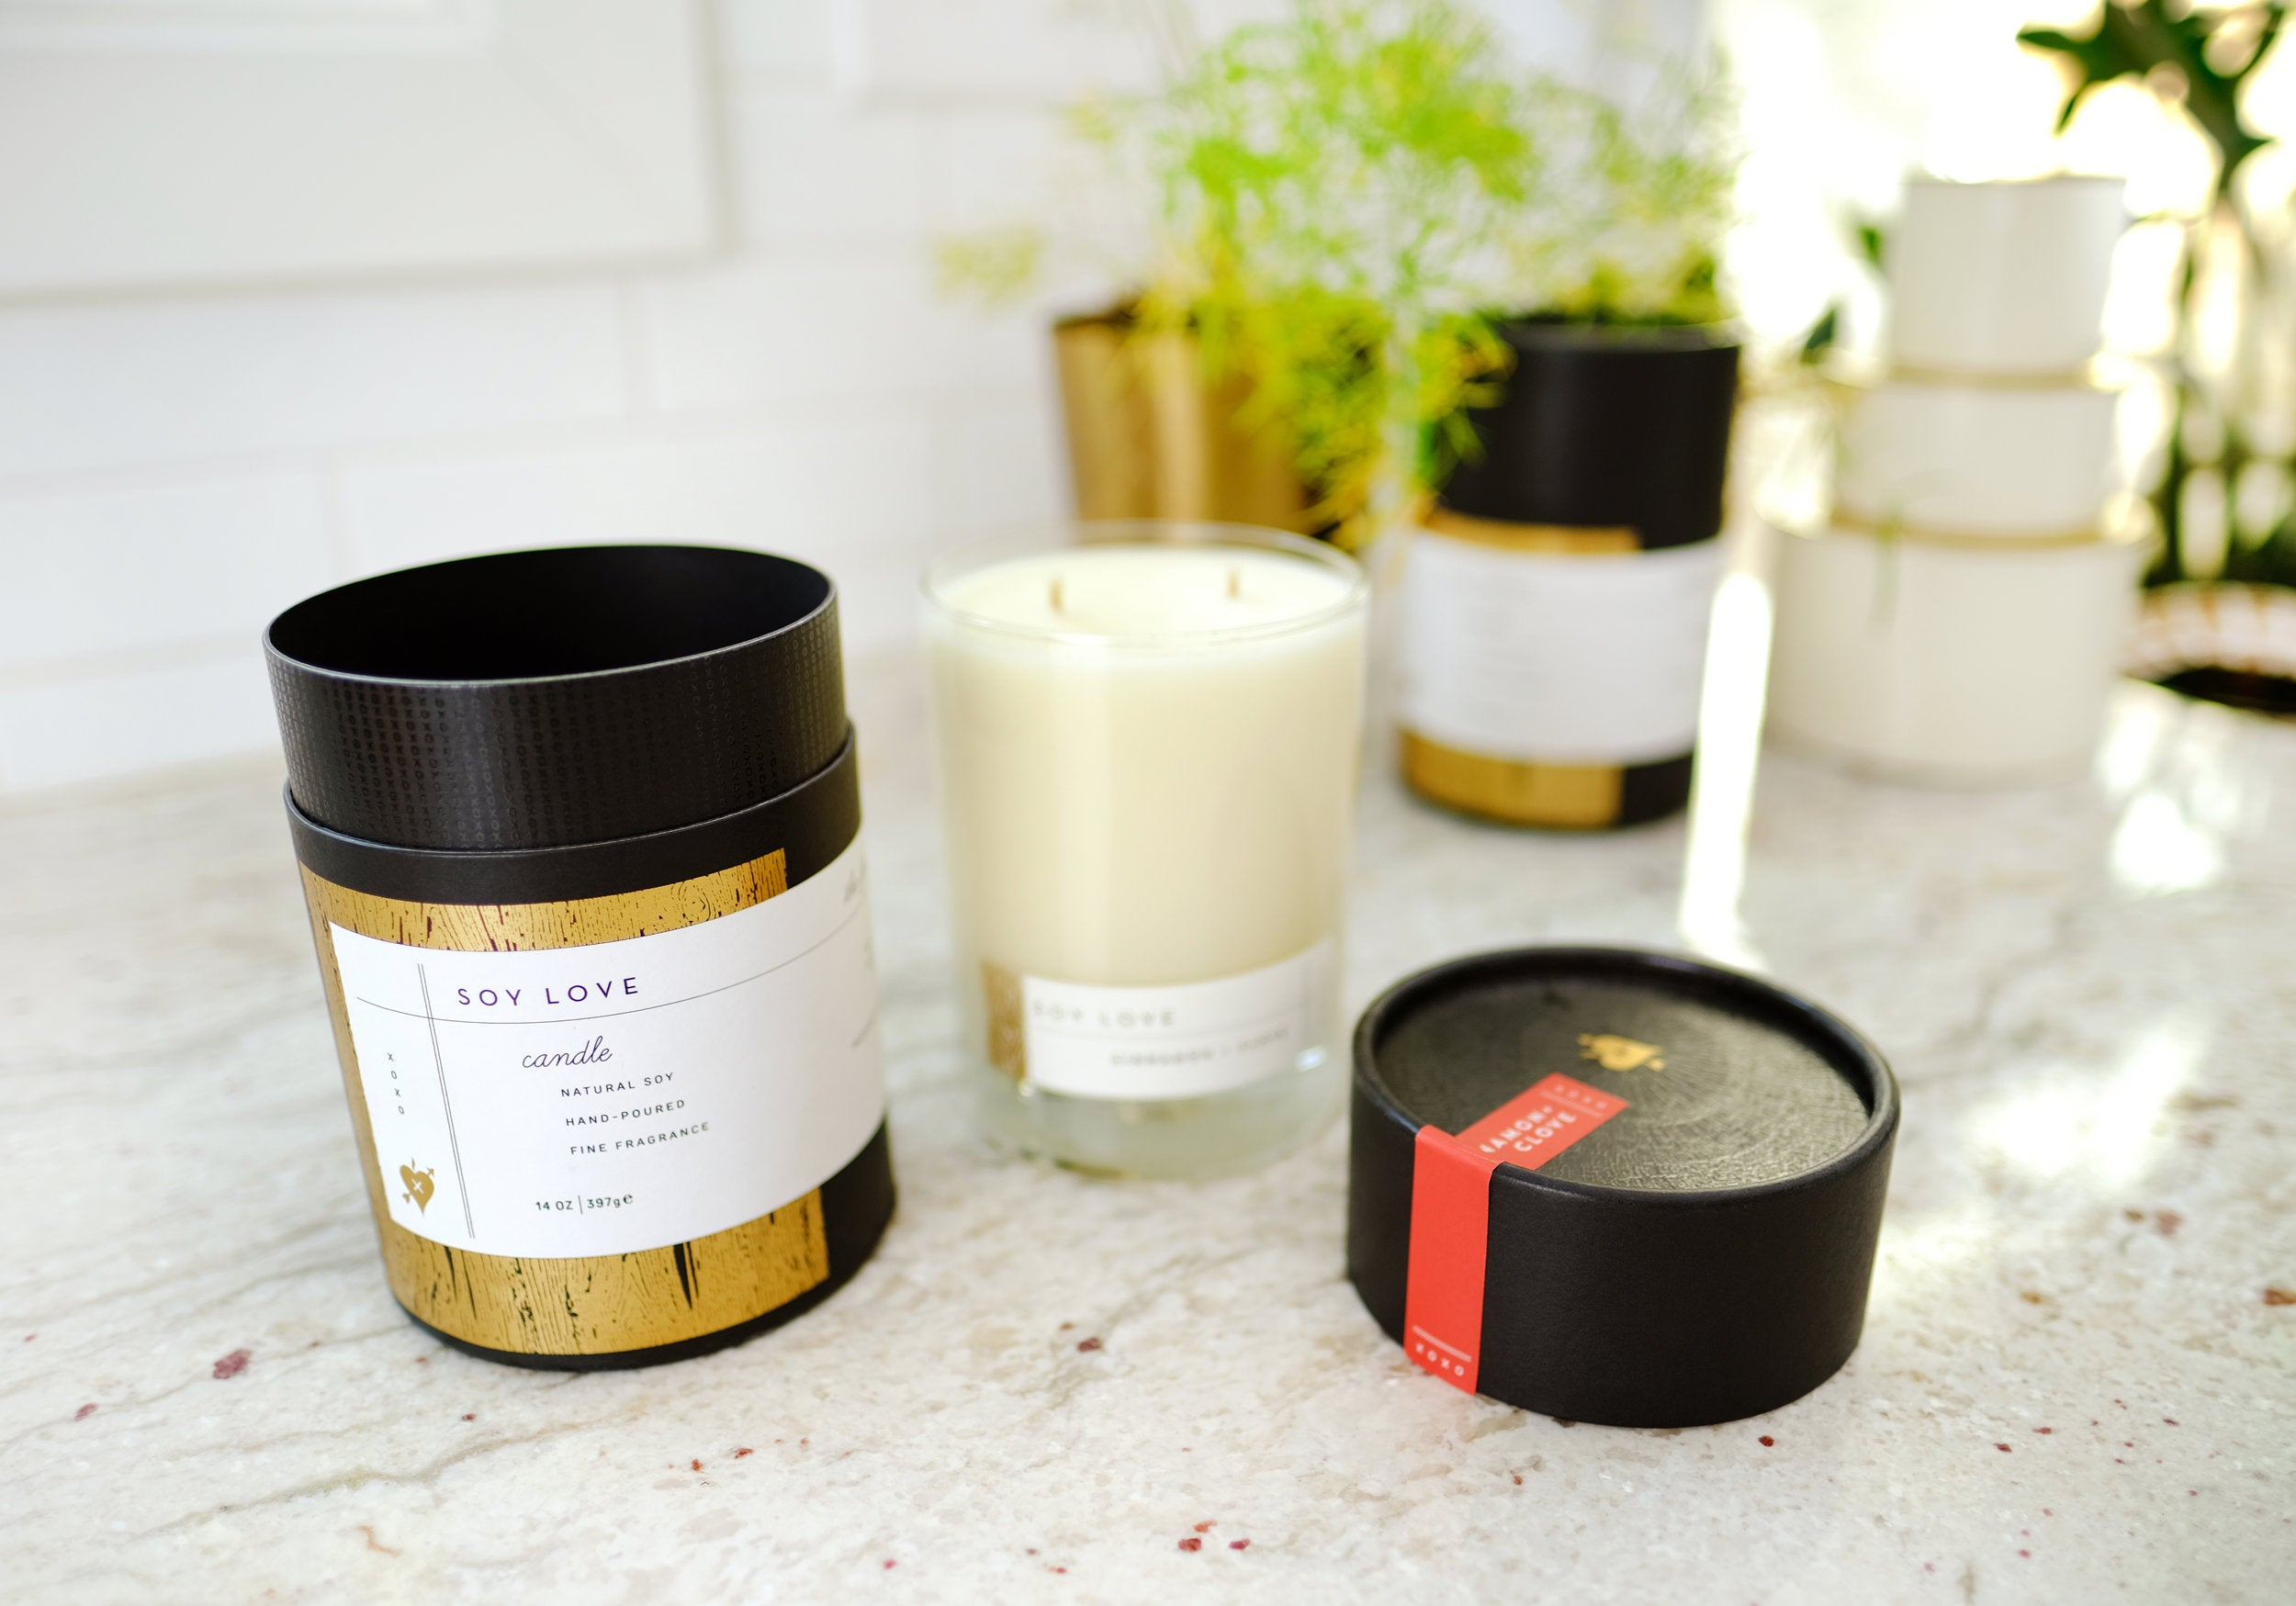 Soy Love 14oz. Candles